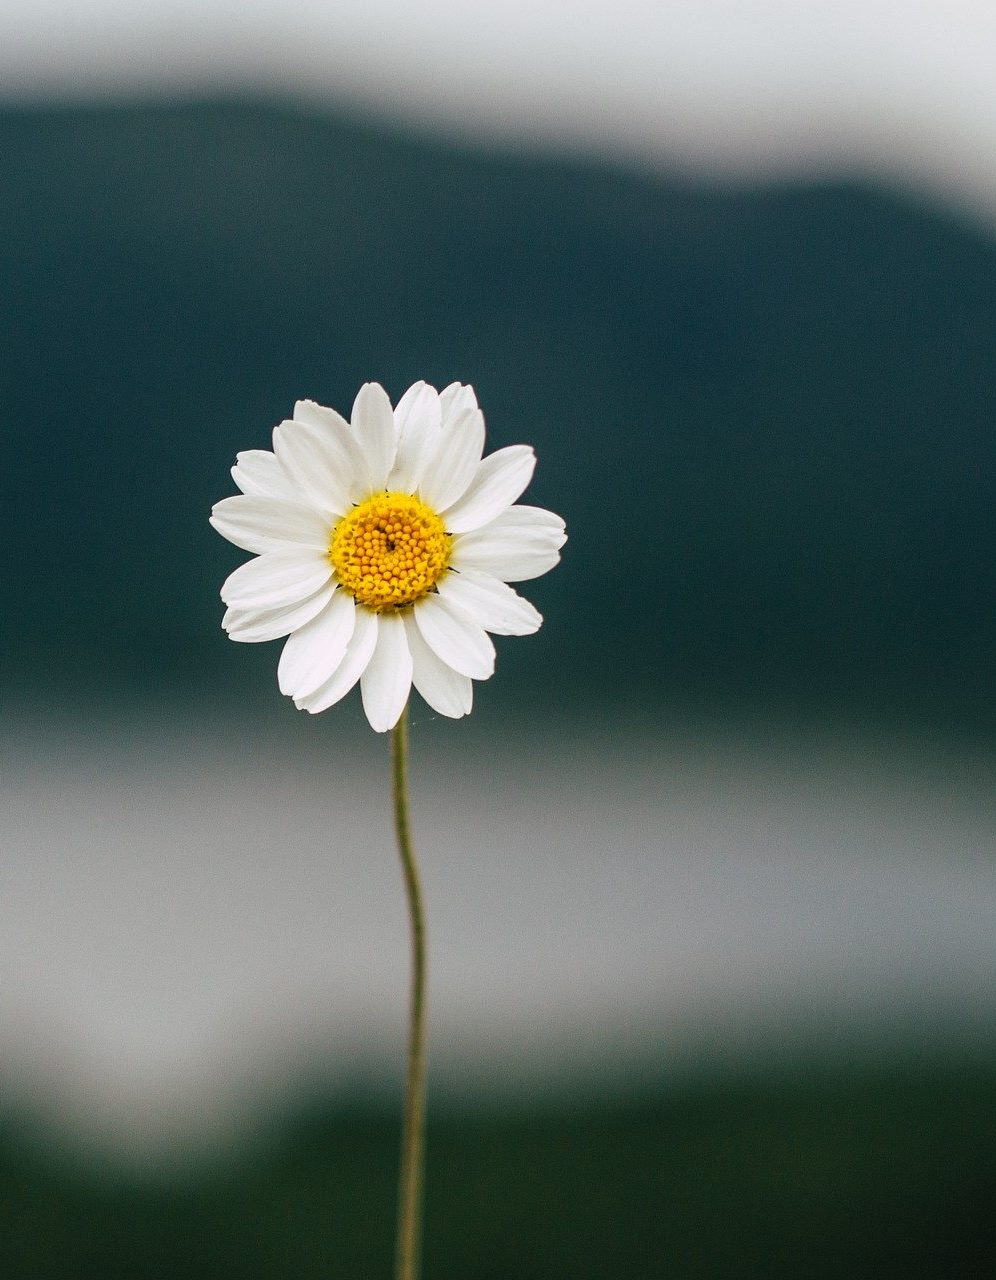 Single daisy focused in on in the picture with an unfocused background that looks like mountains.